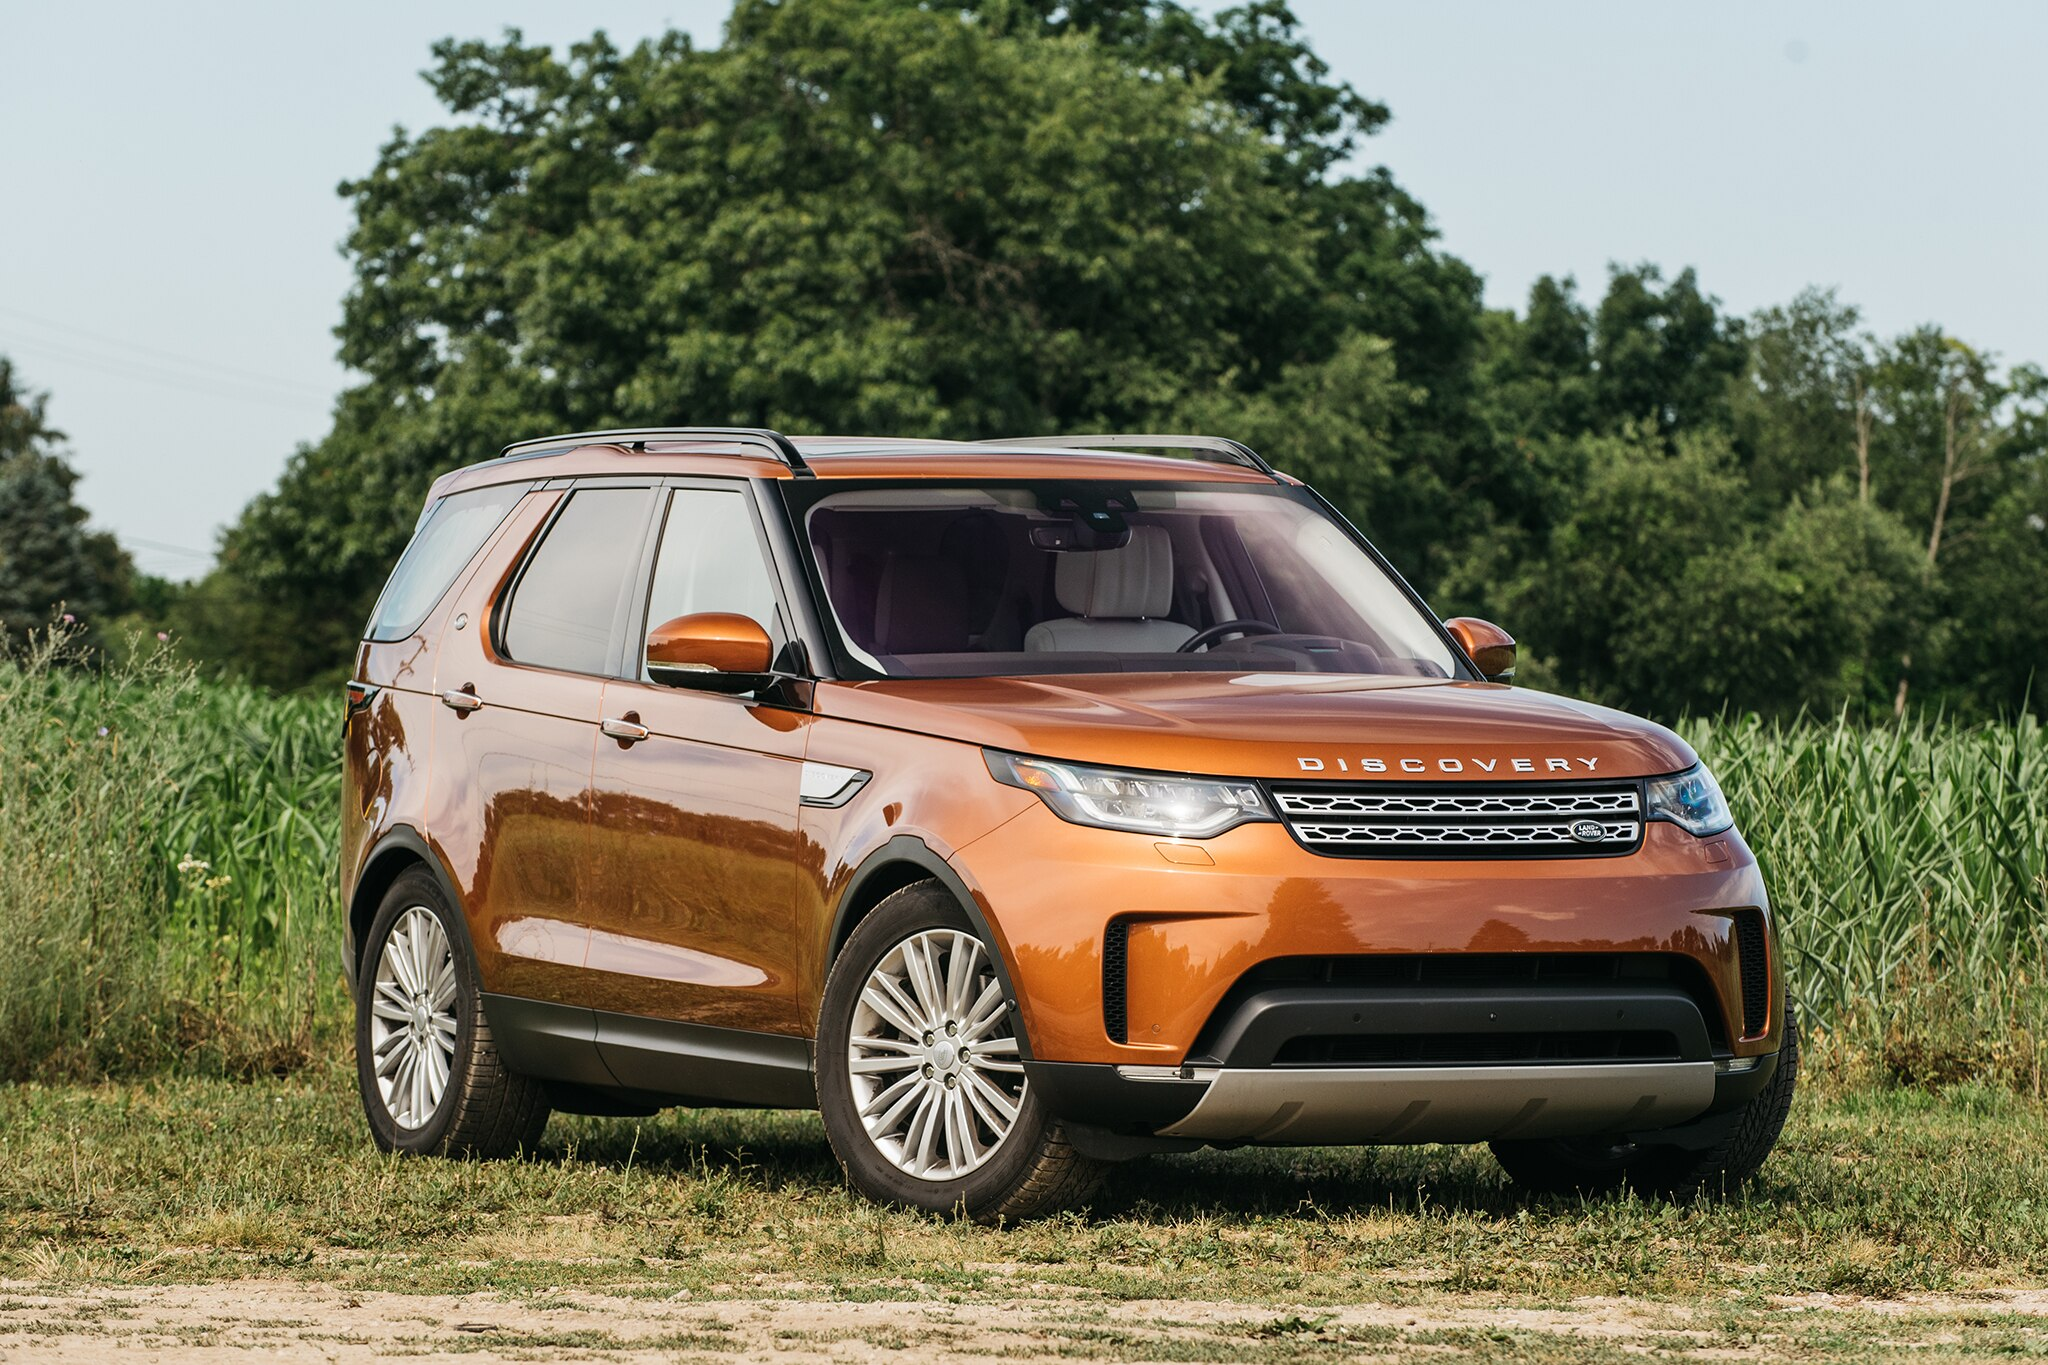 2017 Land Rover Discovery Td6 HSE Front Three Quarter 05